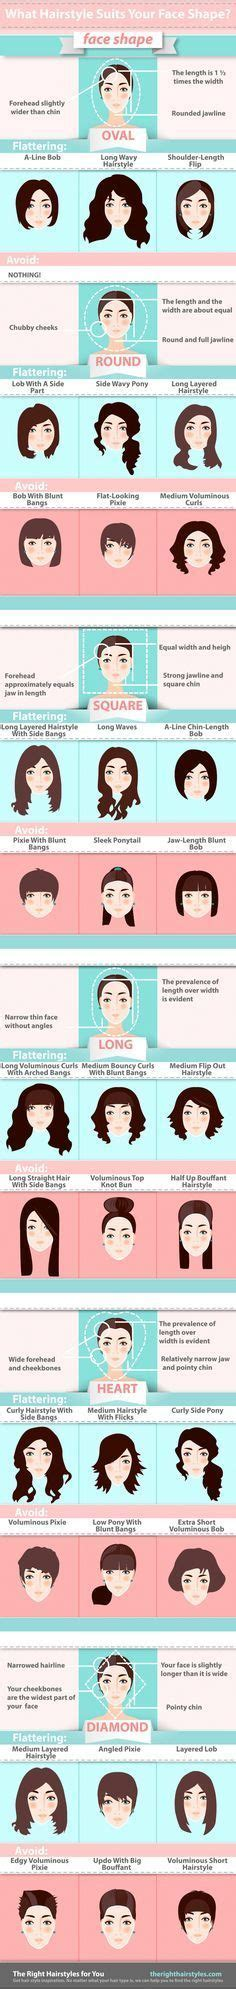 64 best pointy chin club images on pinterest oblong face 64 best pointy chin club images on pinterest oblong face